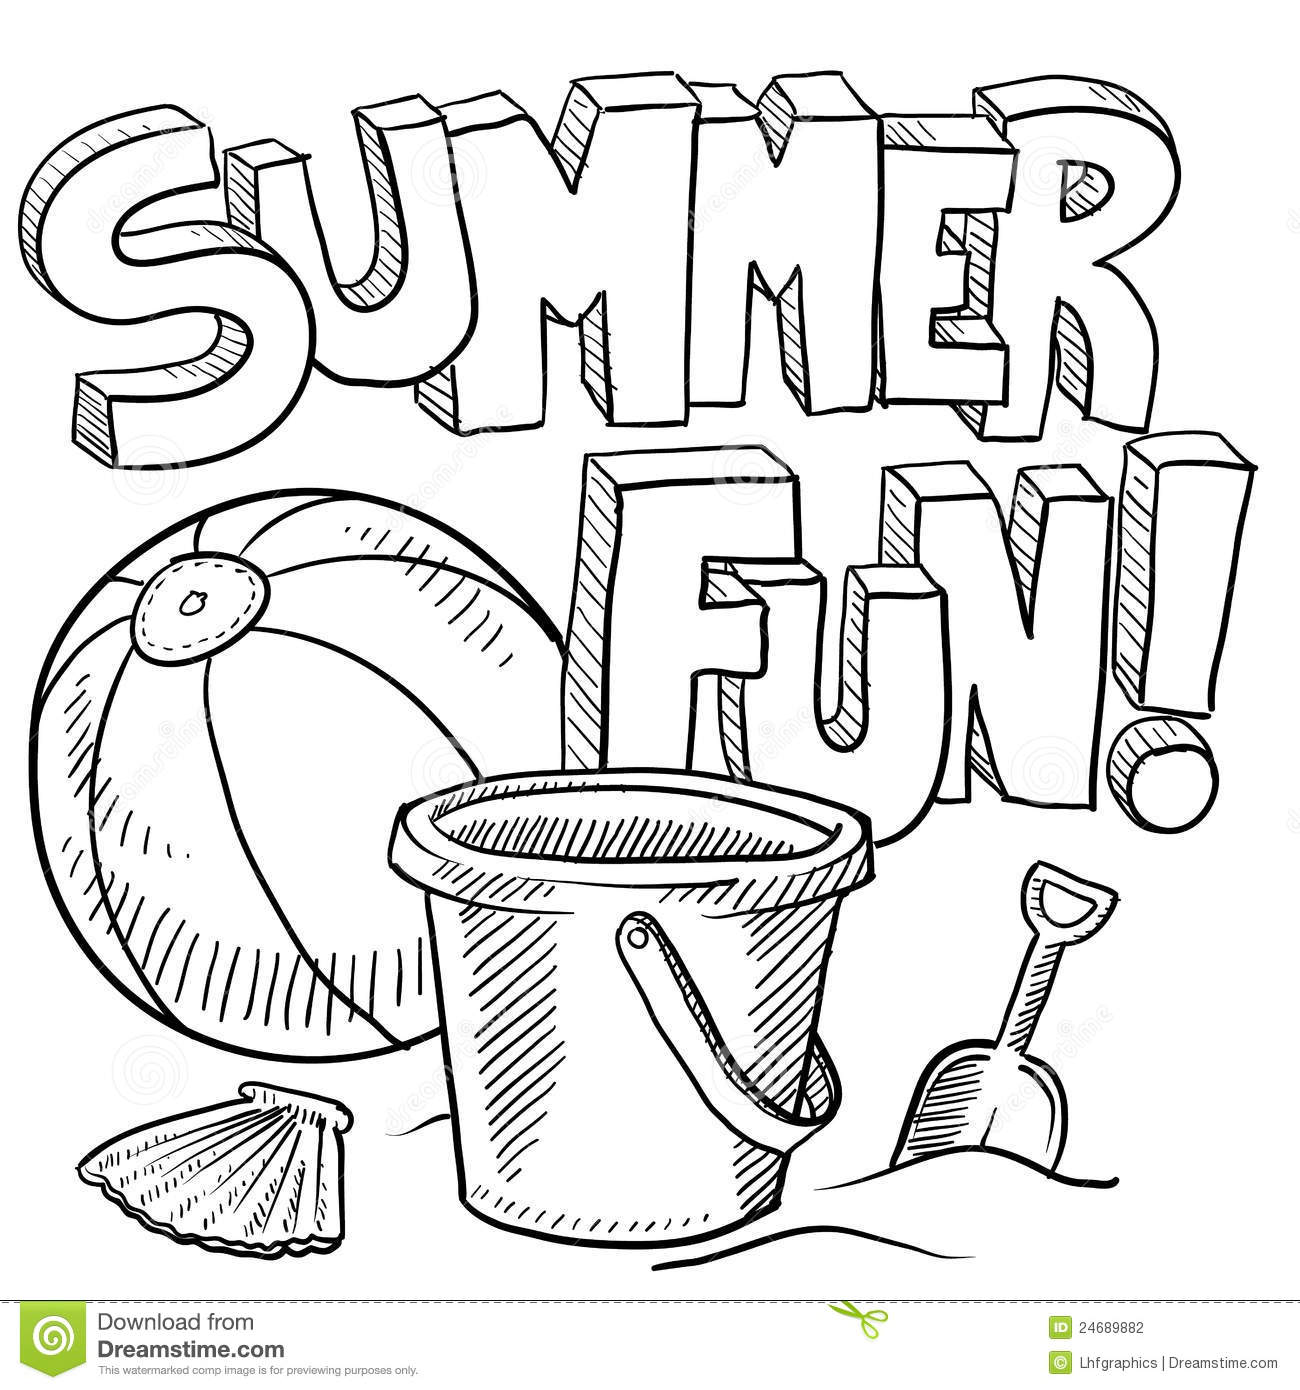 Sketch clipart fun And Clipart Download Black White